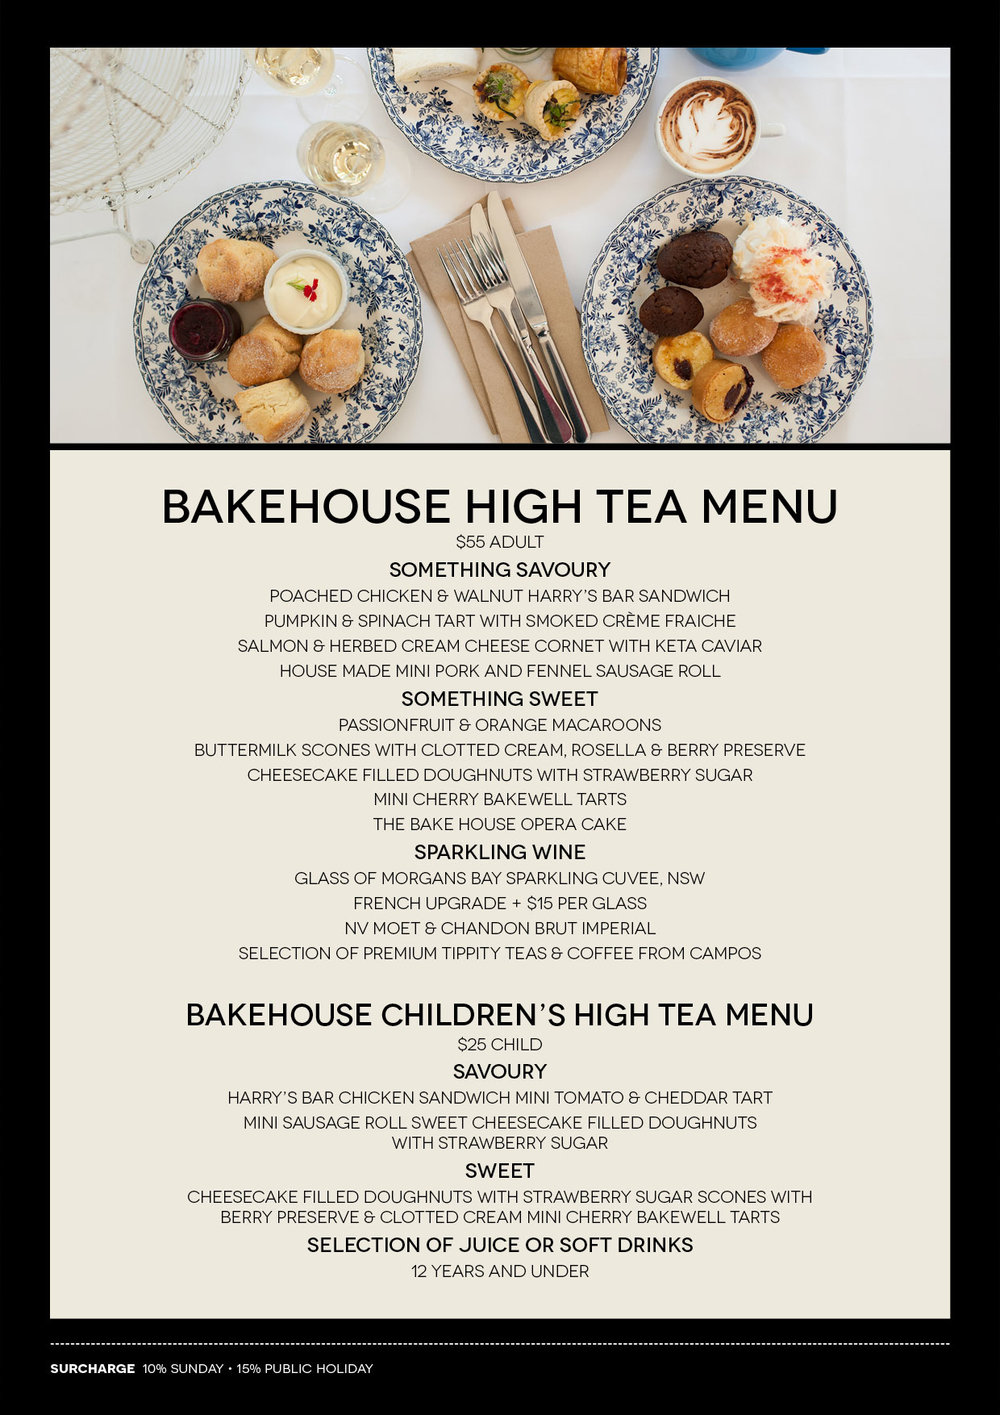 HPB_Bakehouse_Hightea_Menu.png